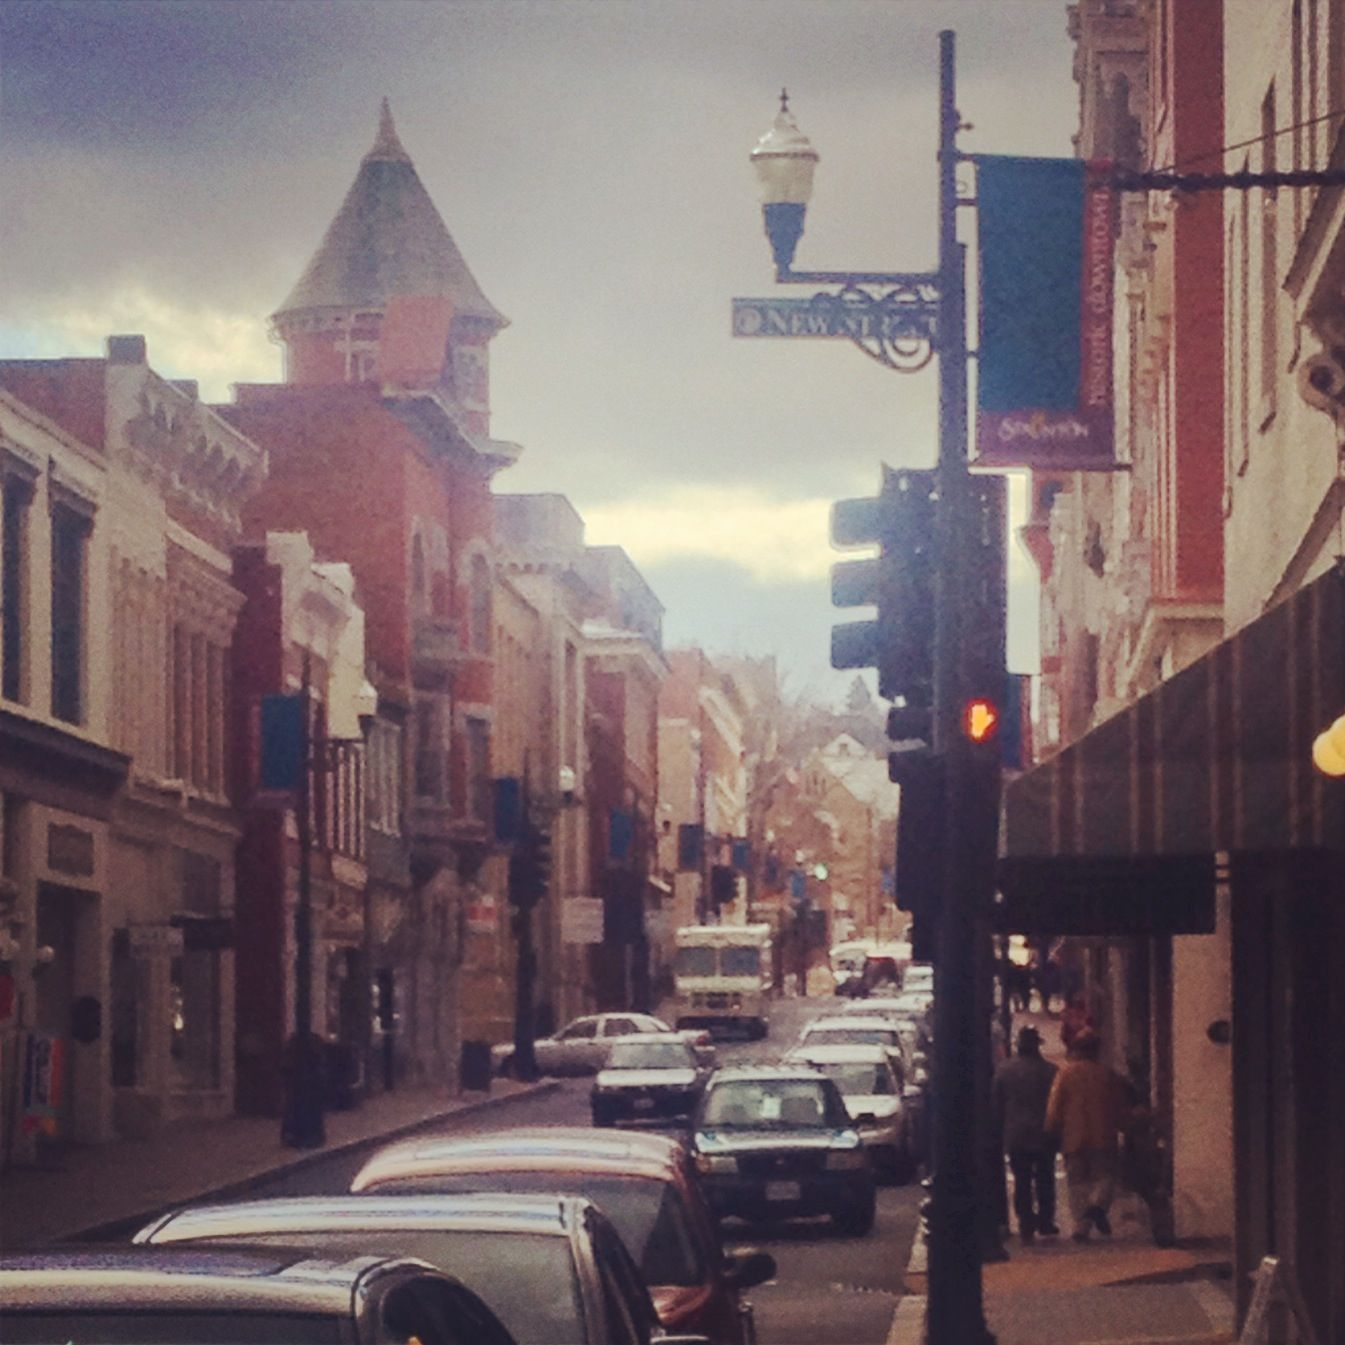 Staunton Va Vacation Trips Travel Places Ive Been